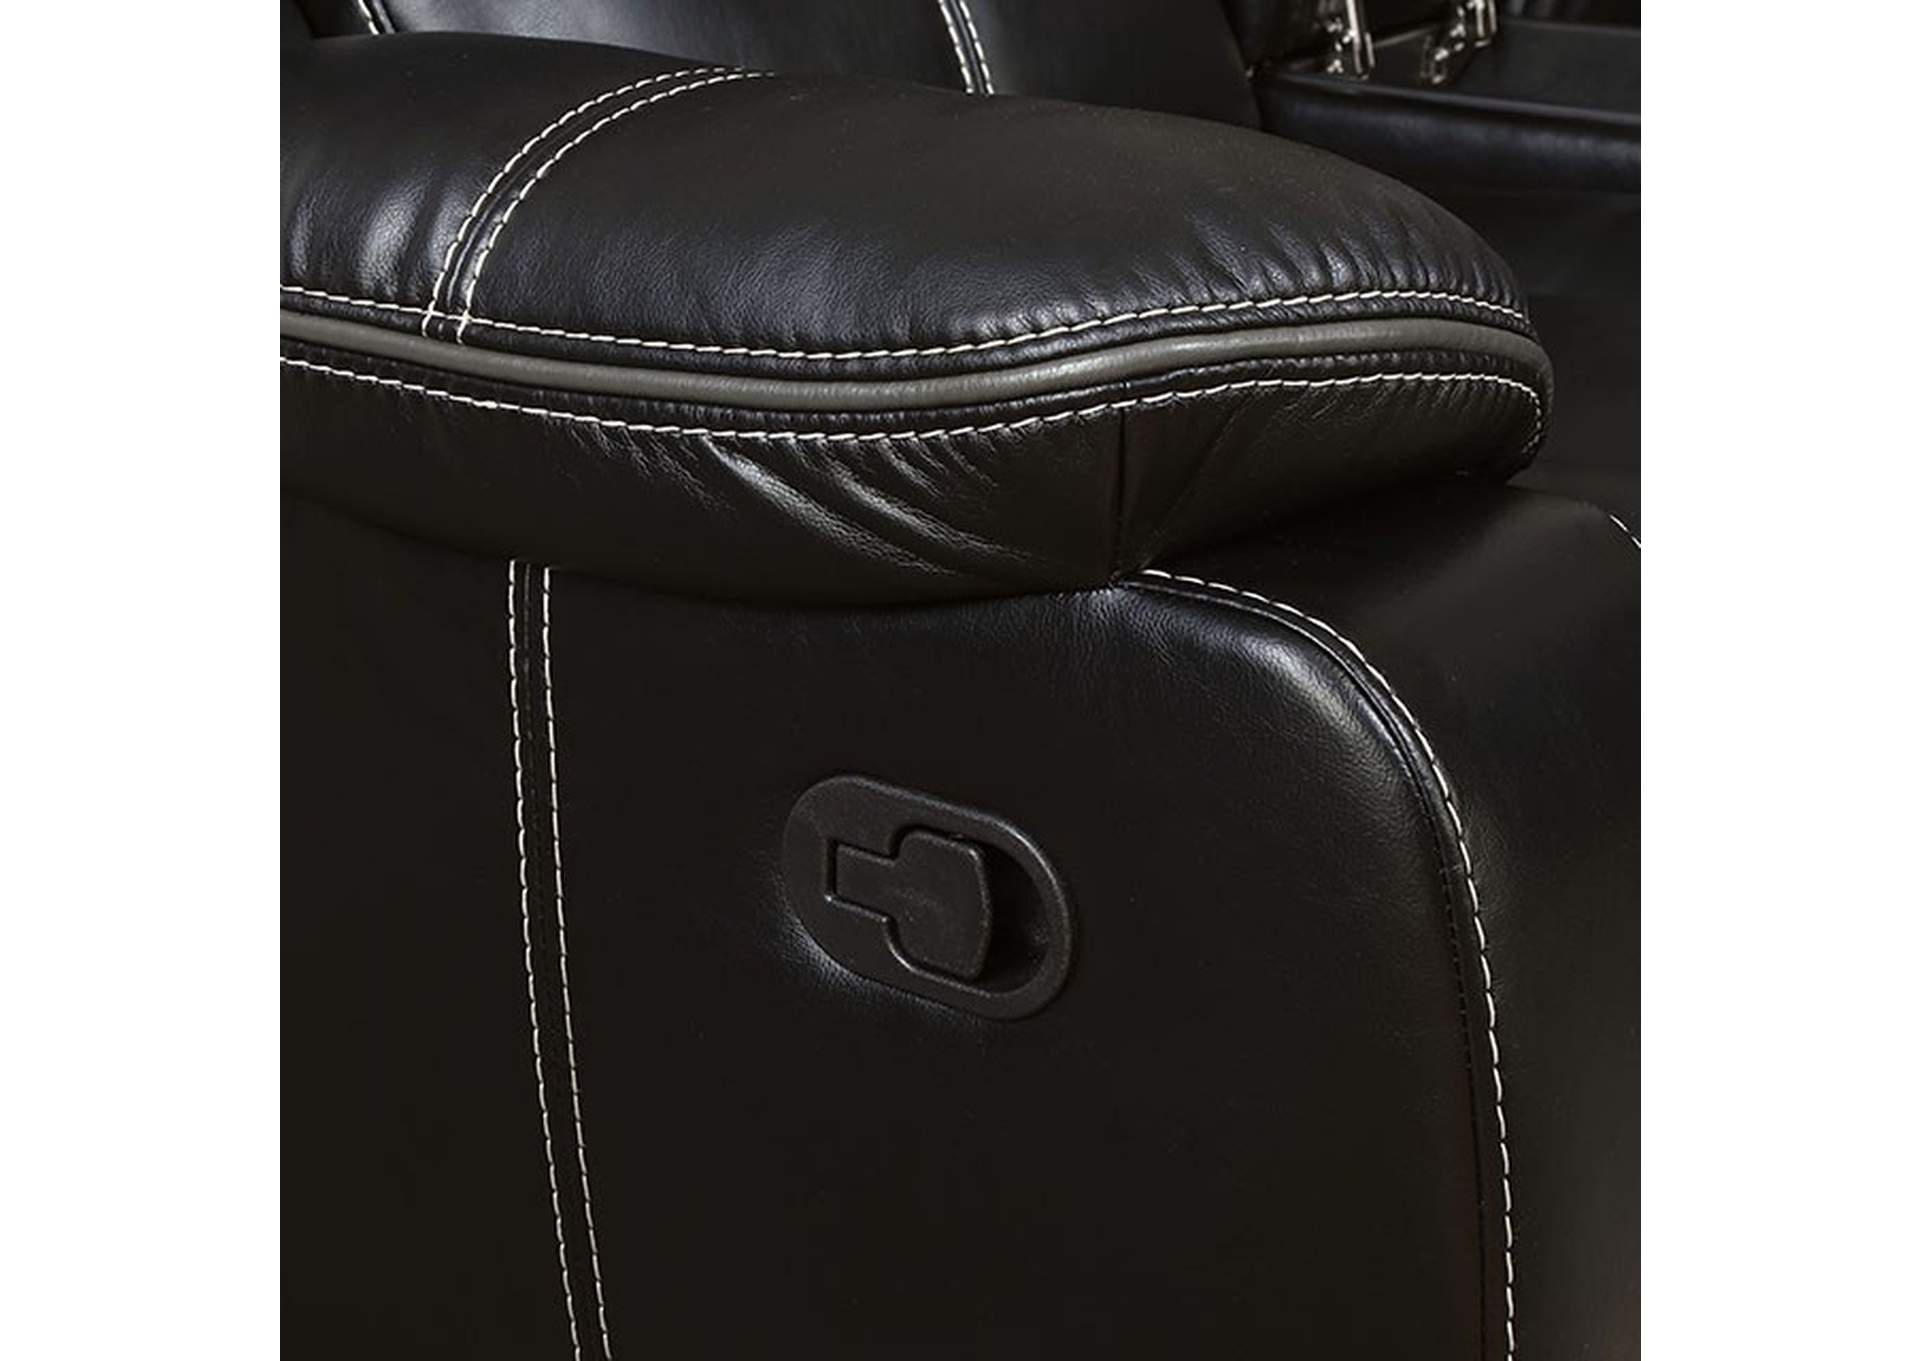 Pollux Black Sofa,Furniture of America